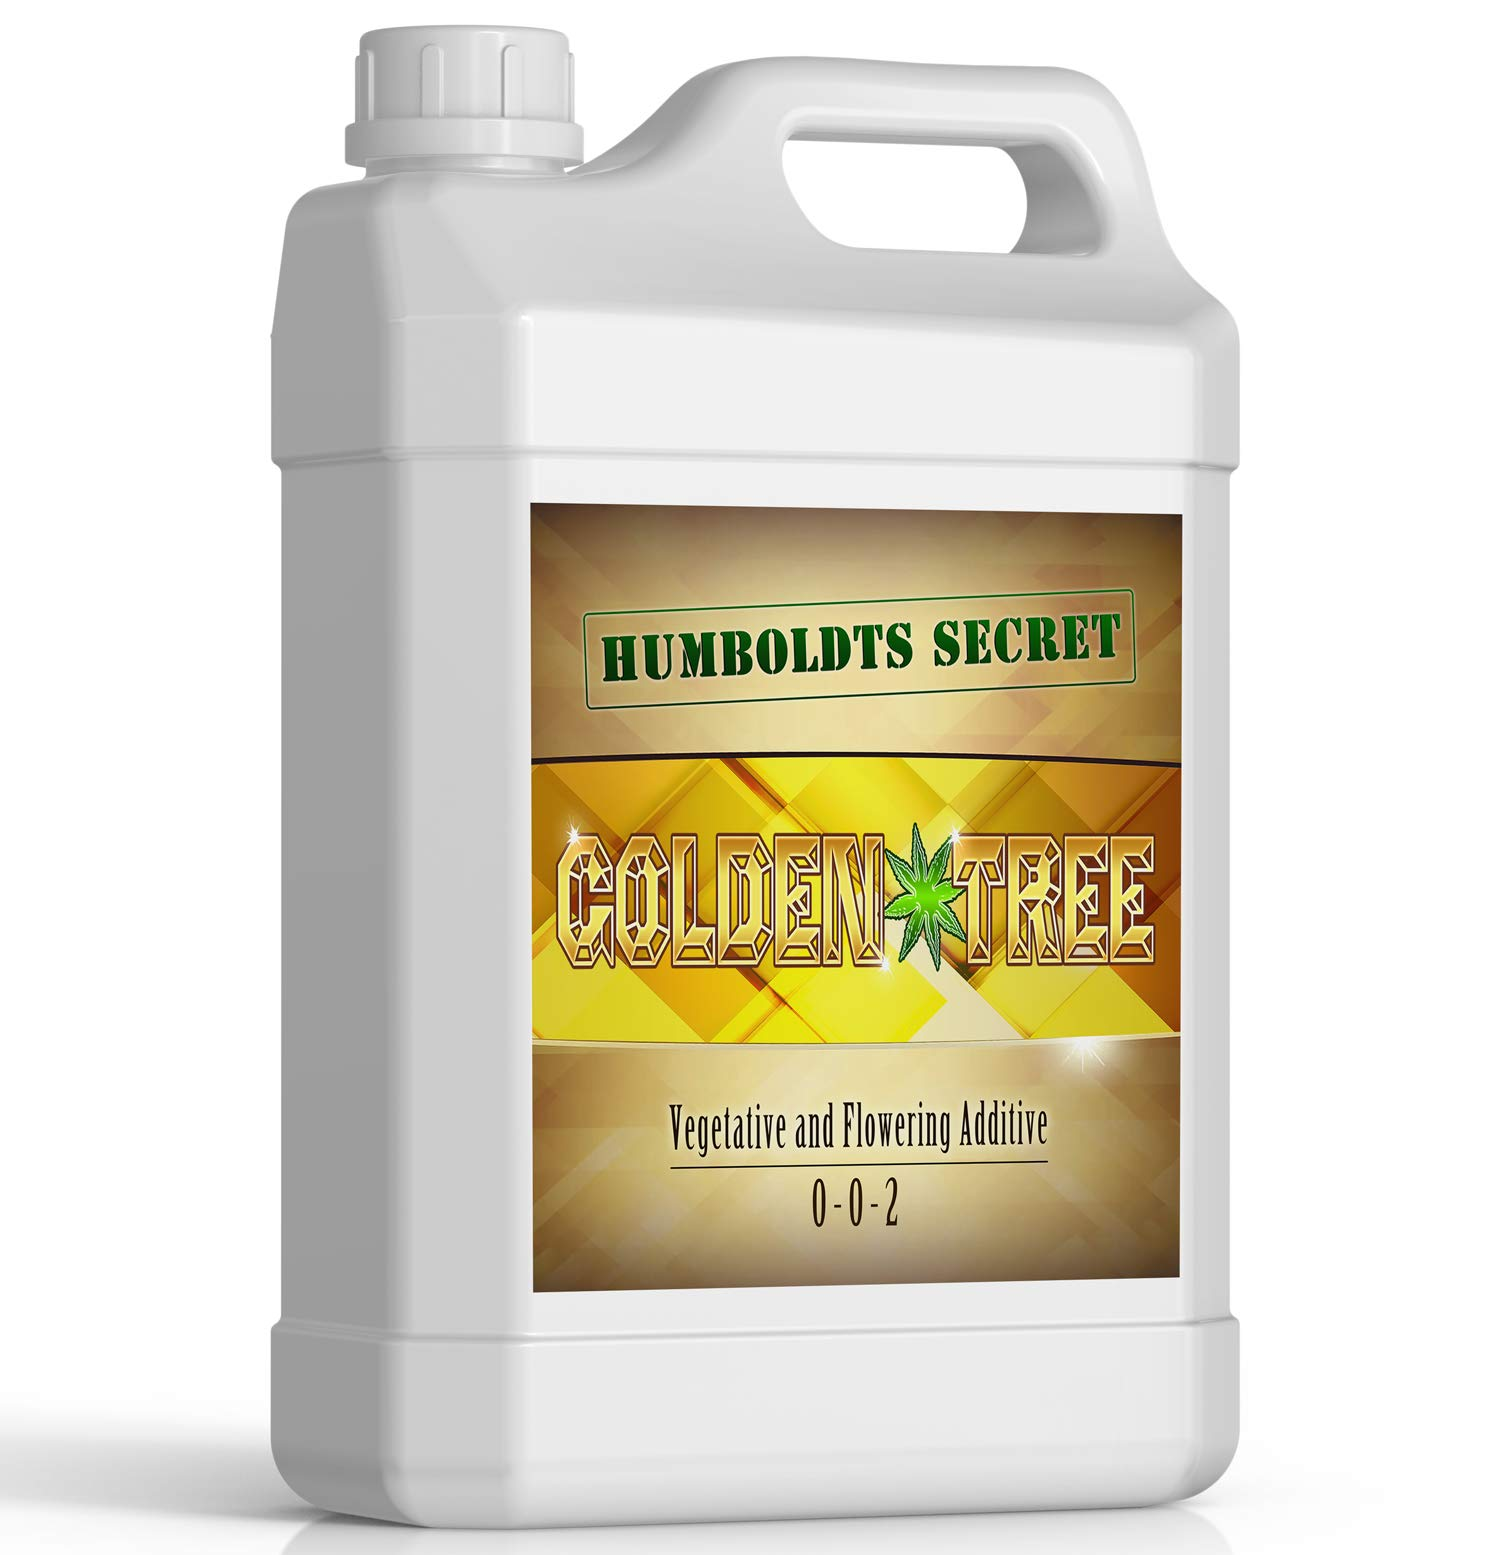 Golden Tree: Best Plant Food For Plants & Trees - Yield Increaser - Plant Rescuer - Excelurator - All-In-One Concentrated Organic Additive - Vegetables, Flowers, Fruits, Lawns, Roses, Tomatoes & More by Humboldts Secret